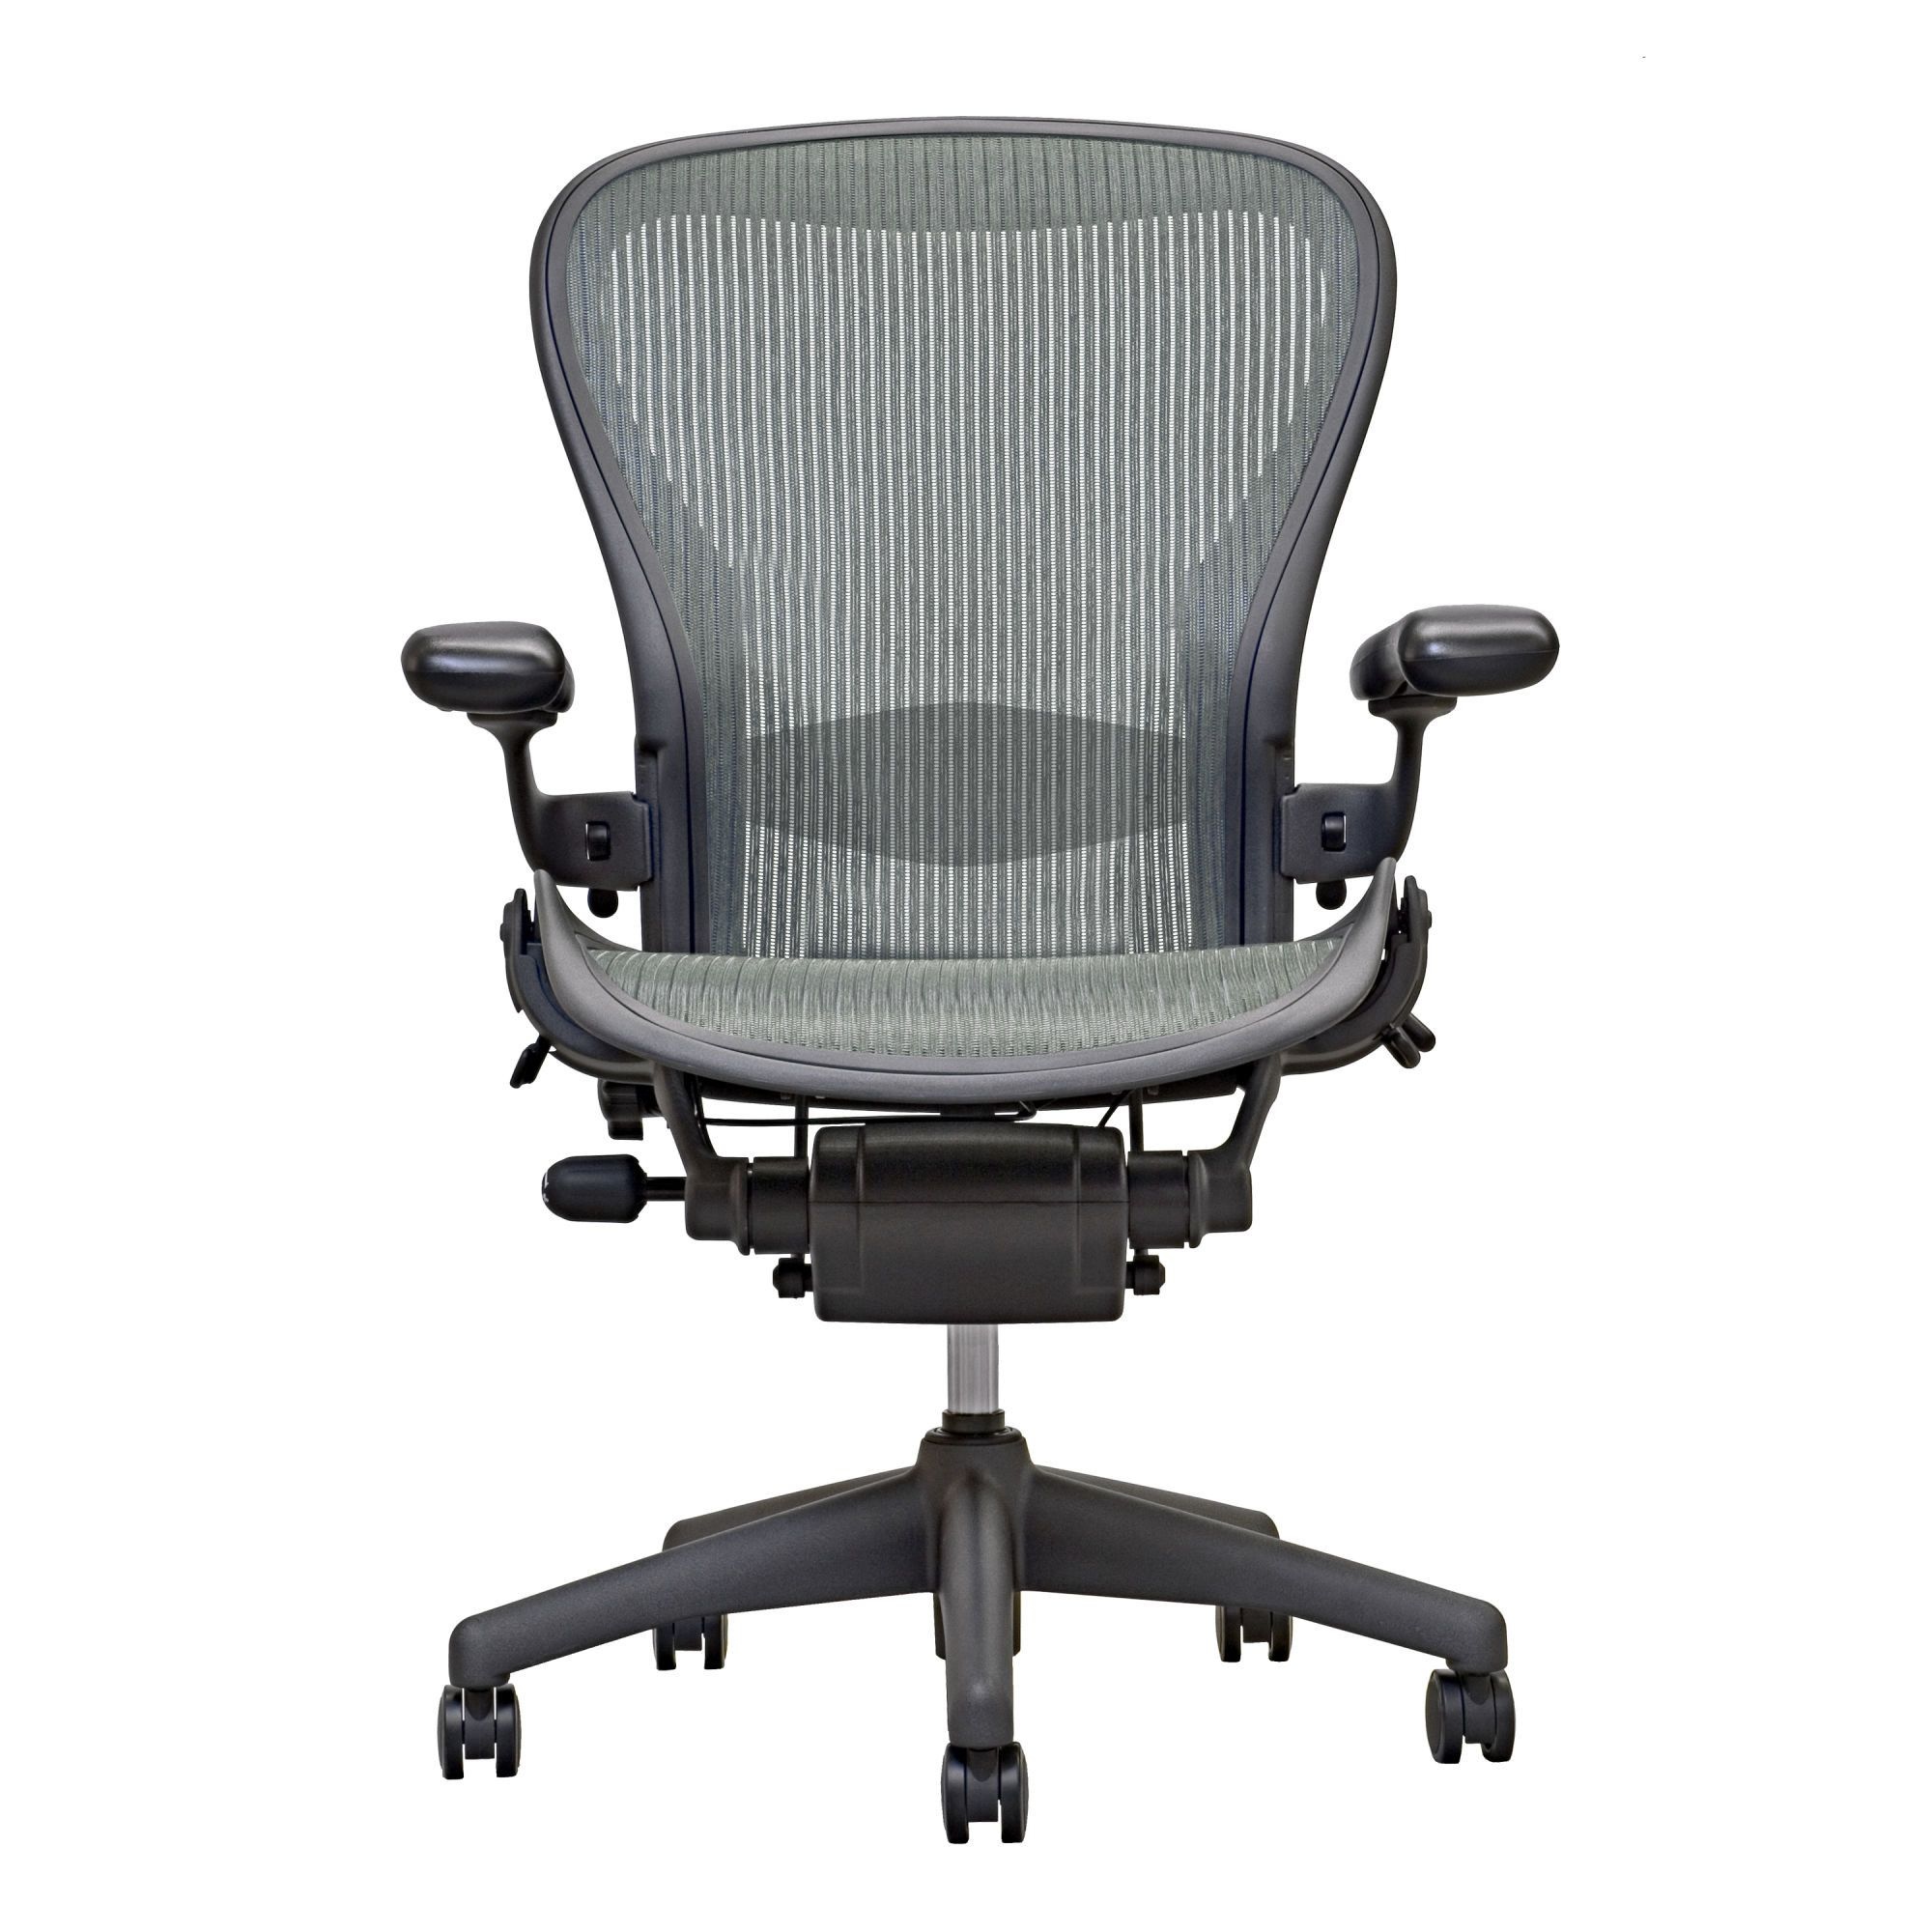 Aeron chair by herman miller highly adjustable open box